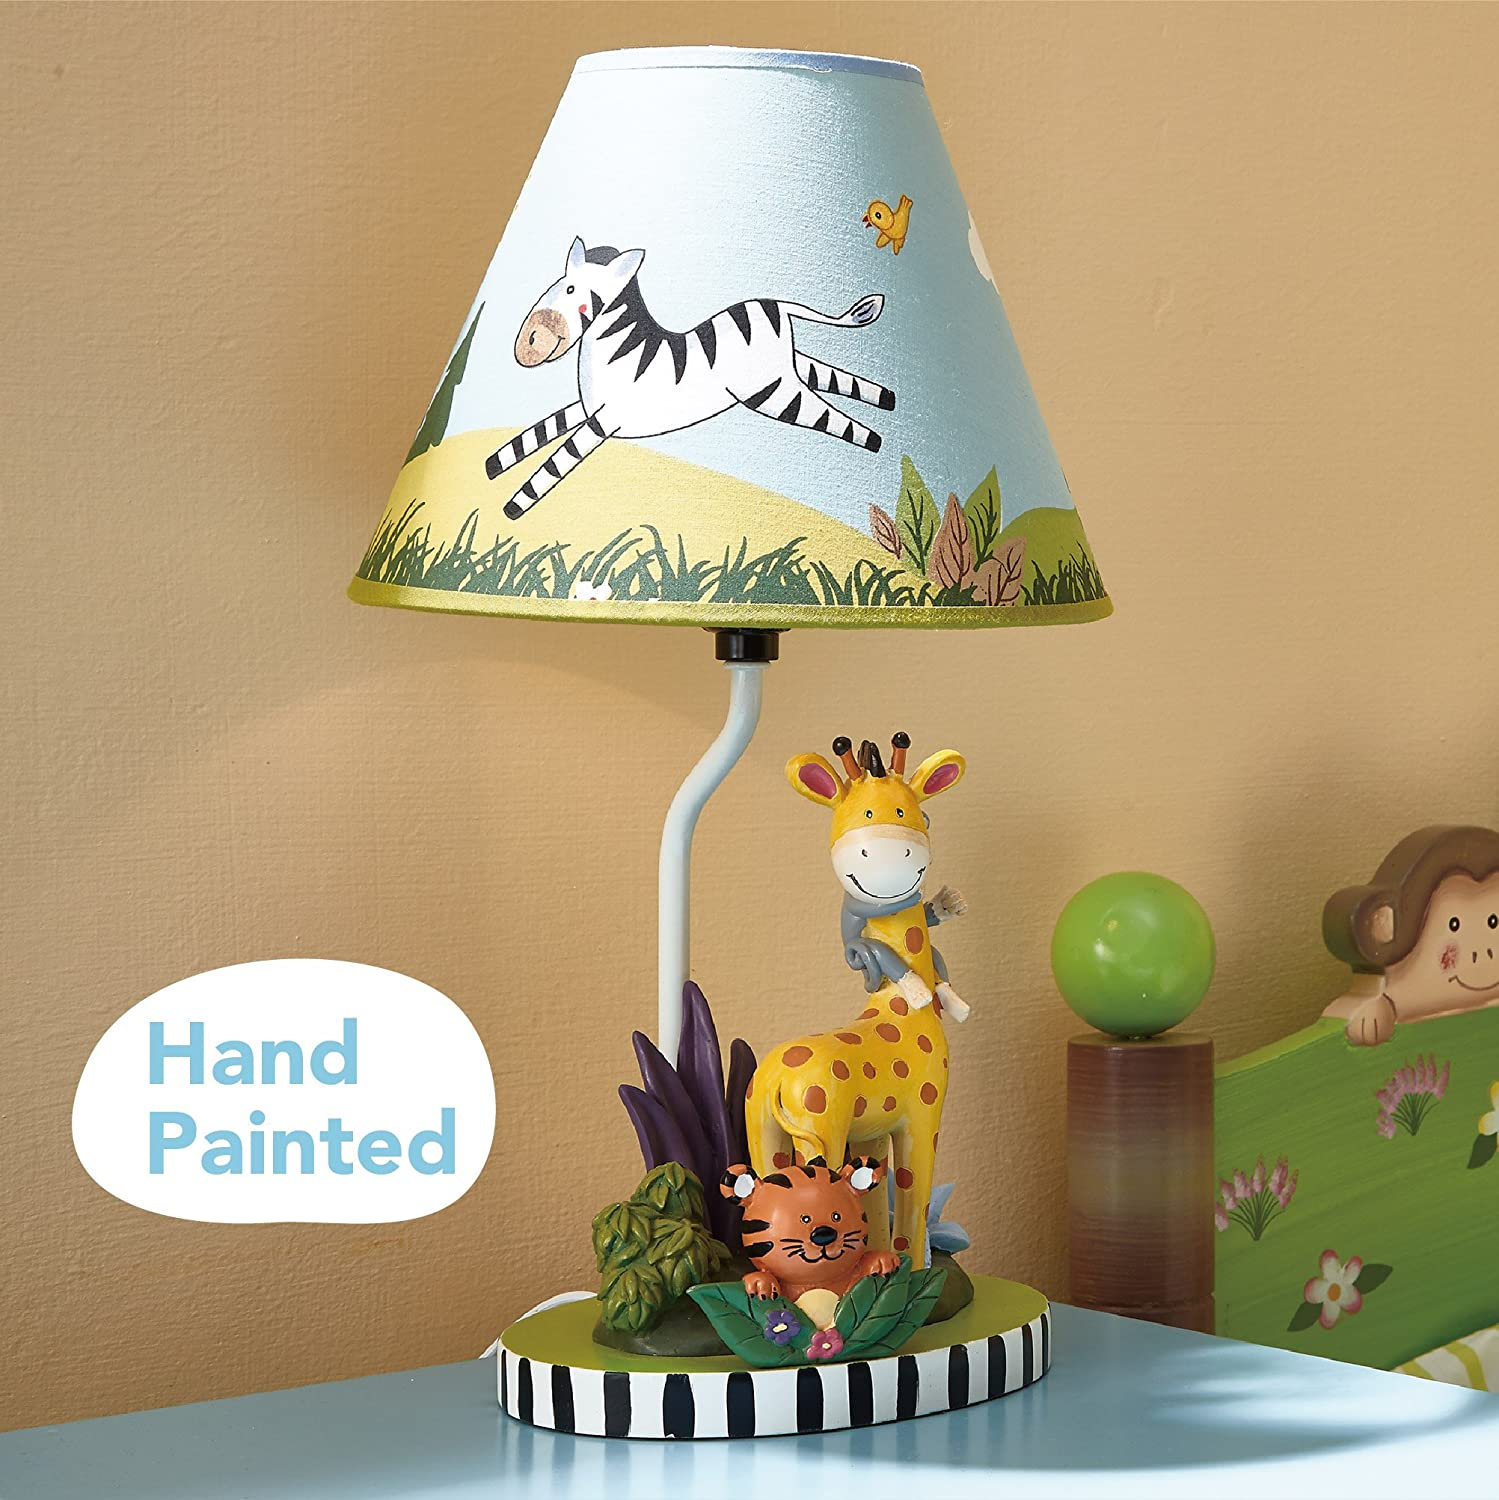 Imagination Inspiring Hand Painted Details   Non-Toxic Fantasy Fields Lead Free Water-Based Paint Sunny Safari Animals Thematic Kids Table Lamp